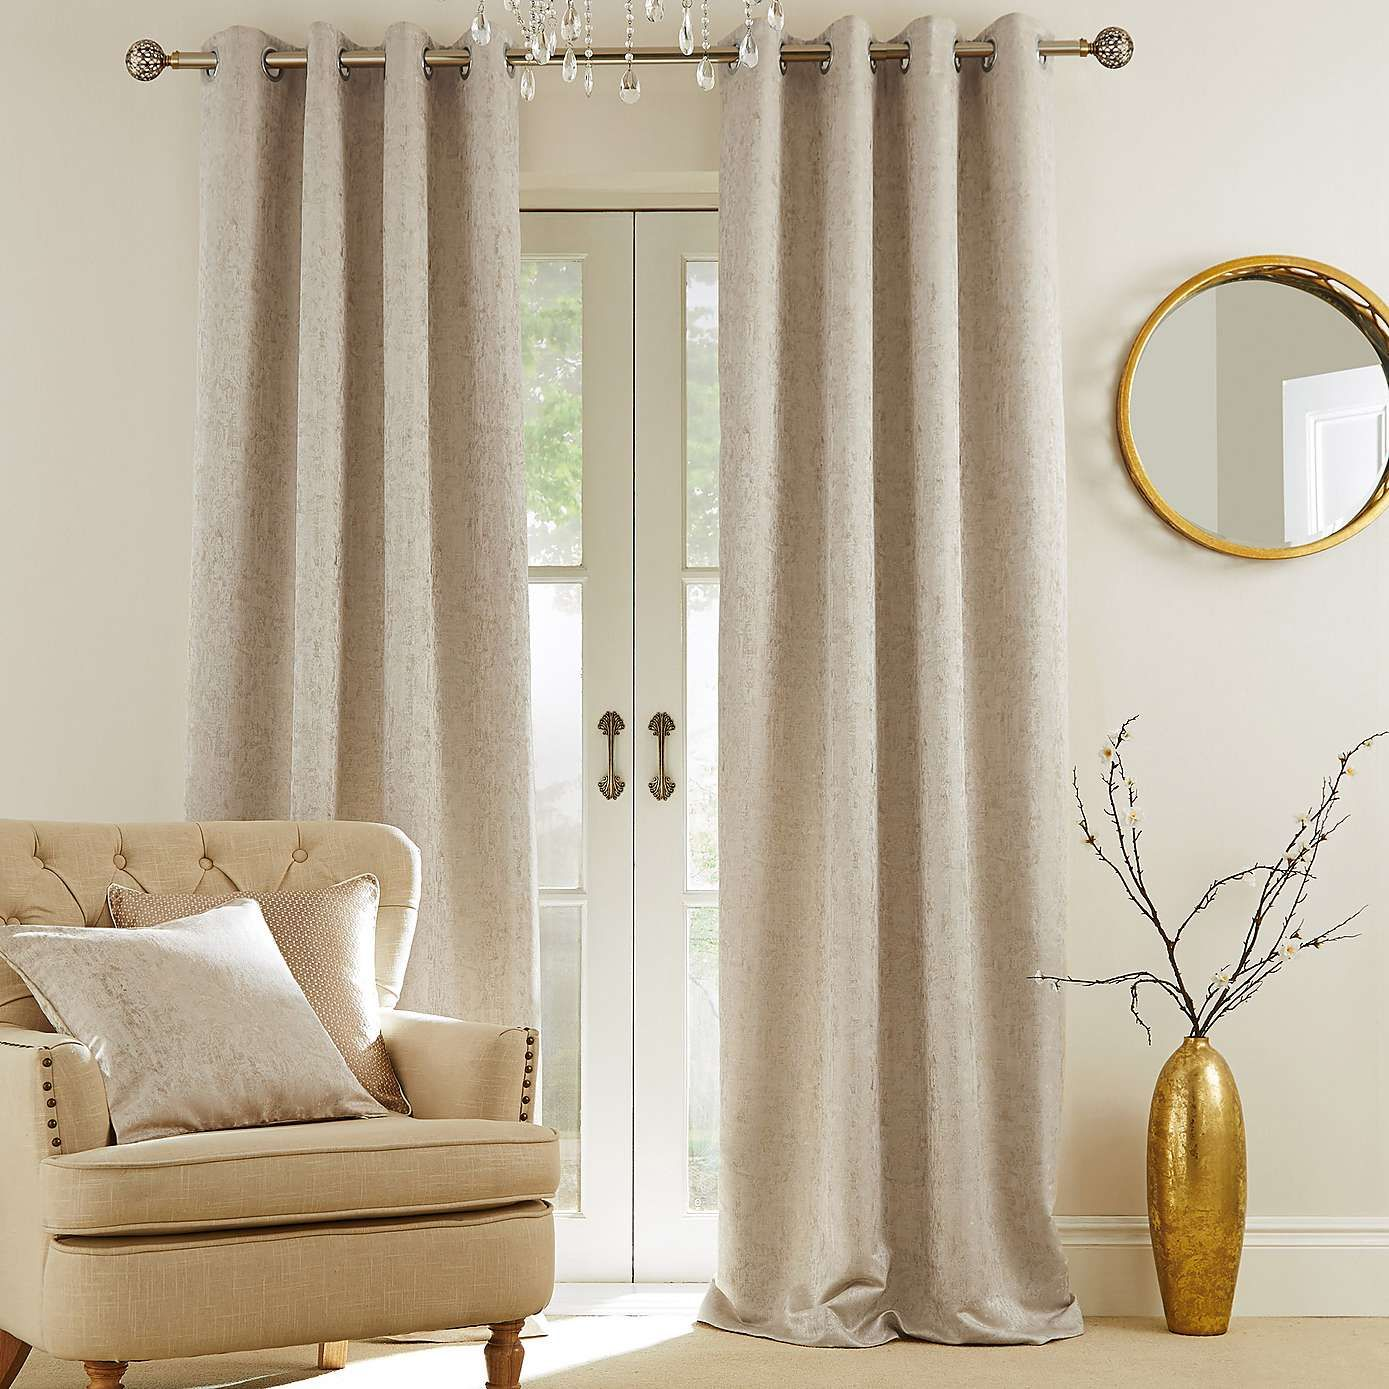 Lined Bedroom Curtains Champagne Richmond Lined Eyelet Curtains Dunelm Future